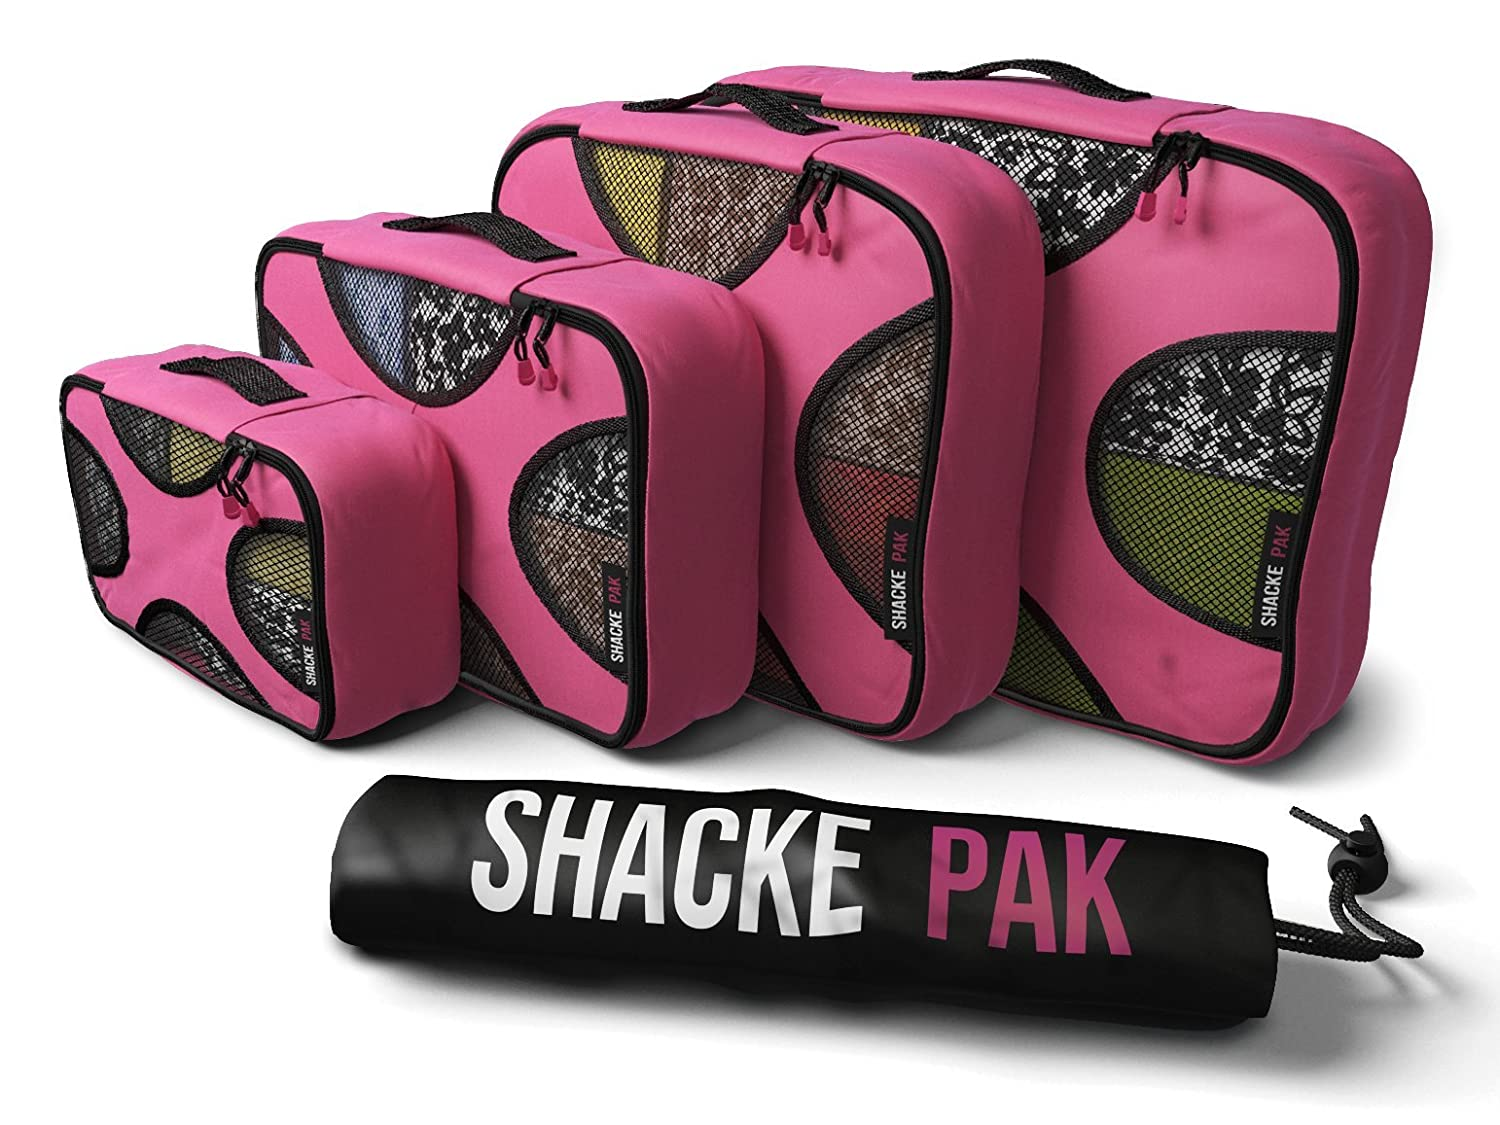 Shacke Pak - 4 Set Packing Cubes - Travel Organizers with Laundry Bag 4sp-00001